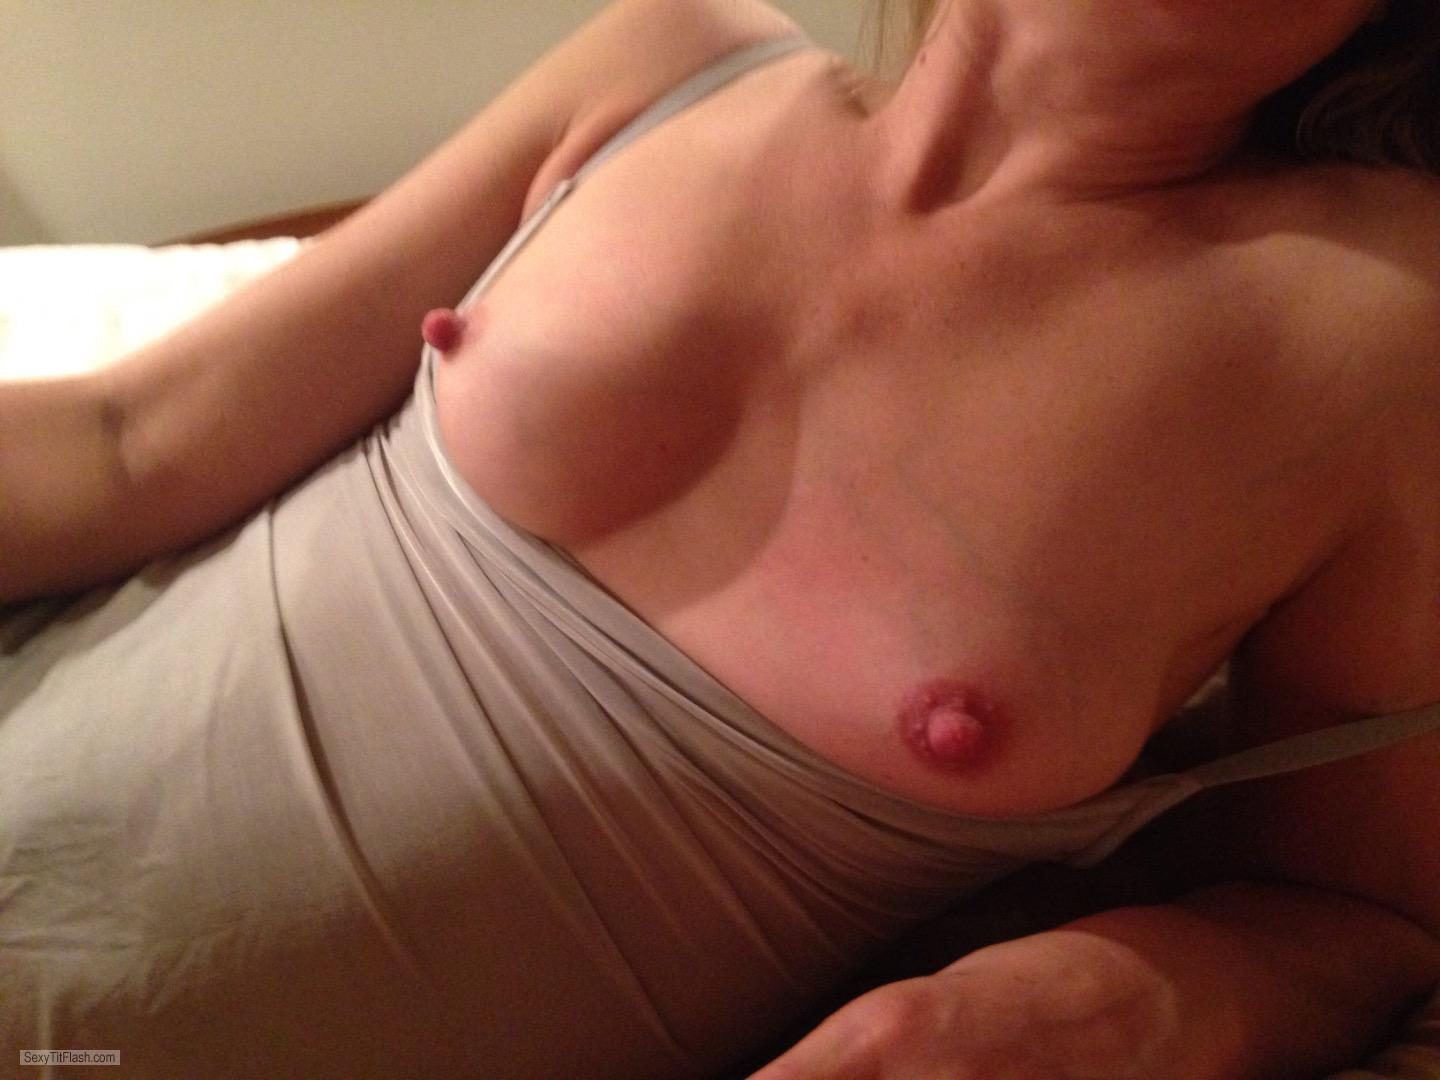 Tit Flash: Wife's Small Tits - Kelly from United States